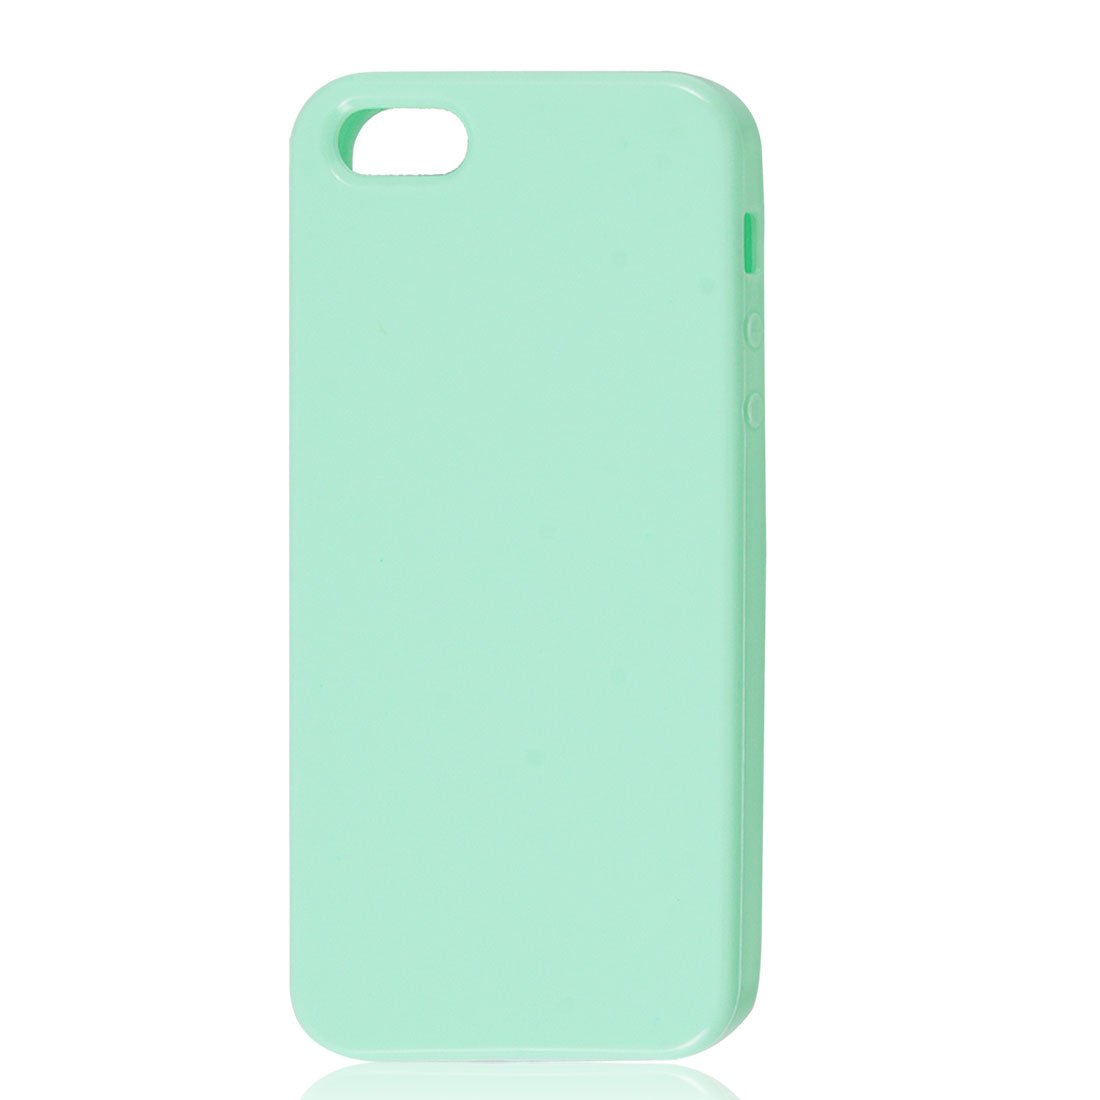 Light Green Soft Plastic TPU Protective Case Cover Skin for Apple iPhone 5 5G